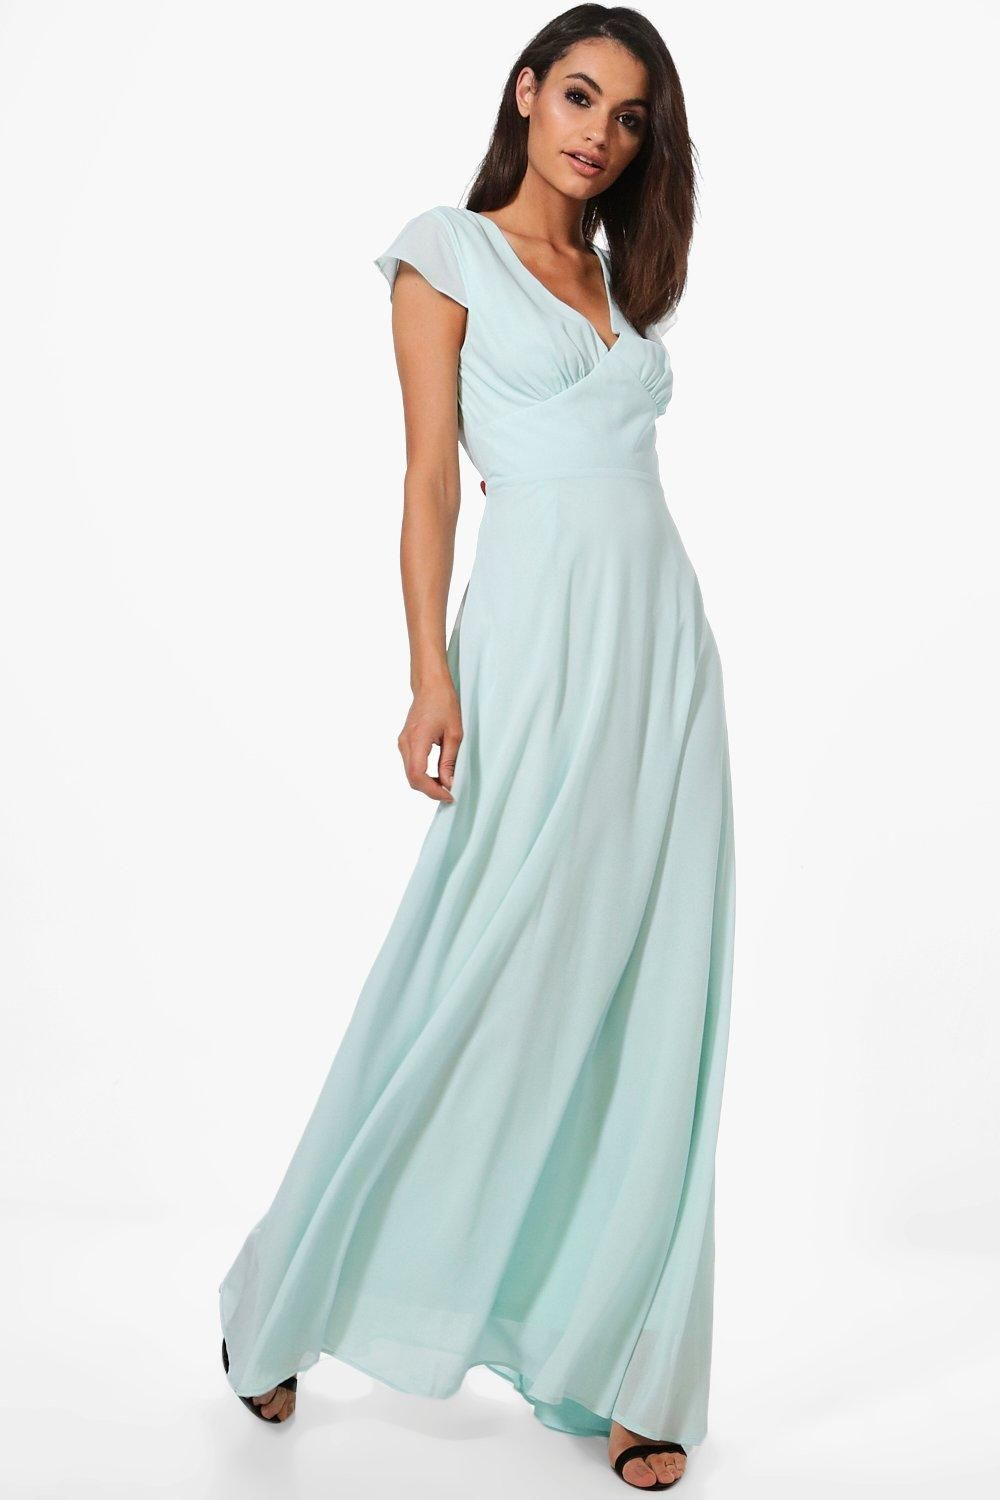 7eda2782b5a1 Click here to find out about the Boutique Ri Chiffon Cap Sleeve Maxi Dress  from Boohoo, part of our latest Dresses collection ready to shop online  today!